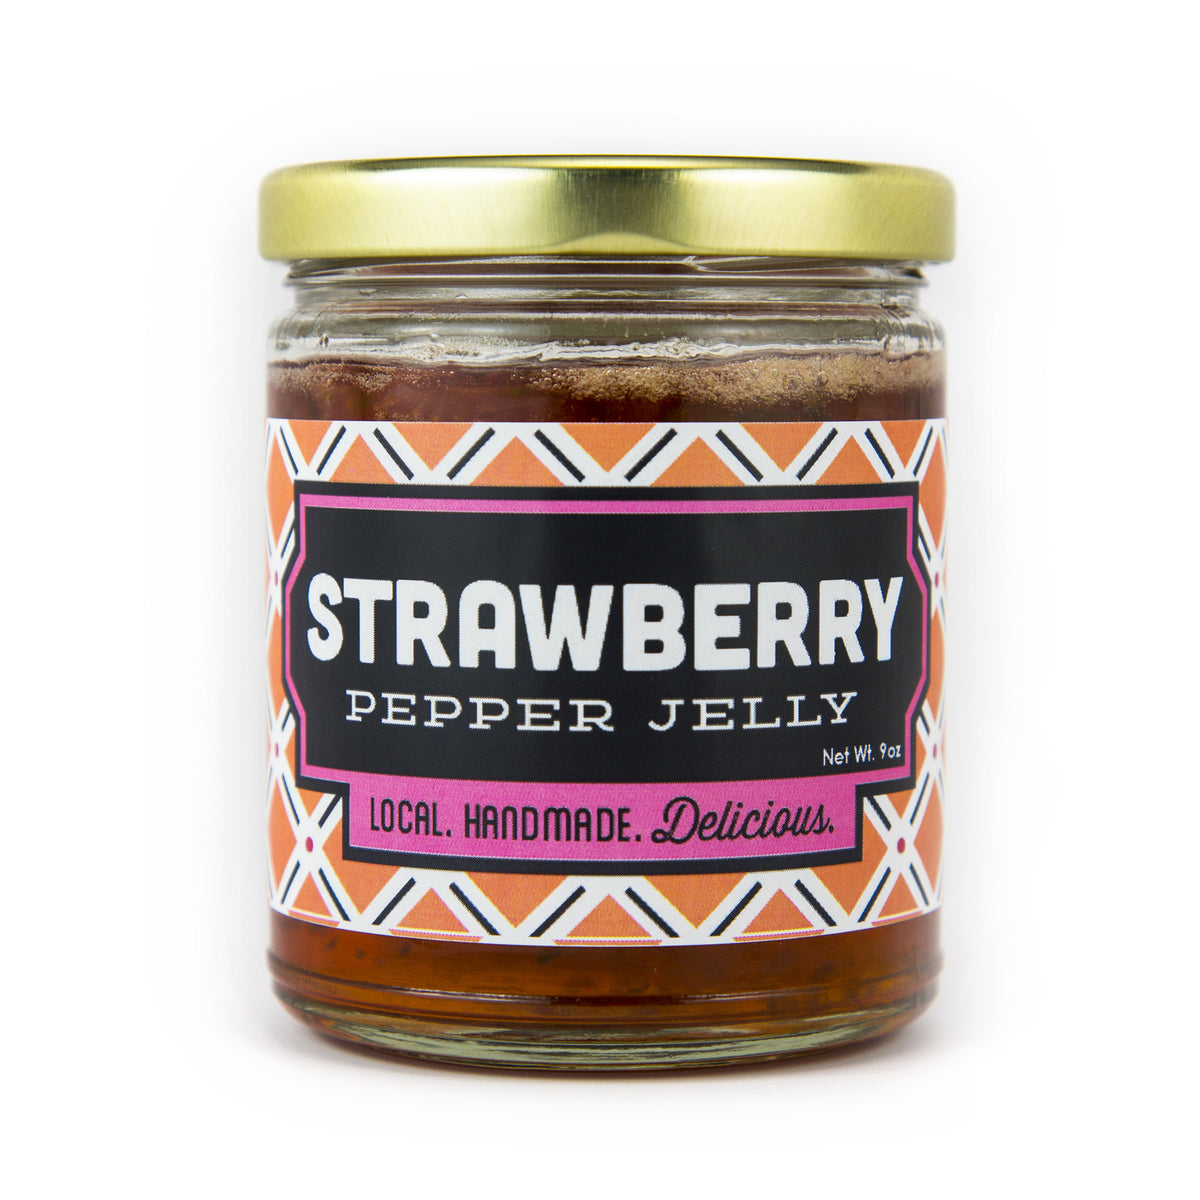 Louisiana Sweet Strawberry Pepper Jelly - Louisiana Products - Red Stick Spice Company